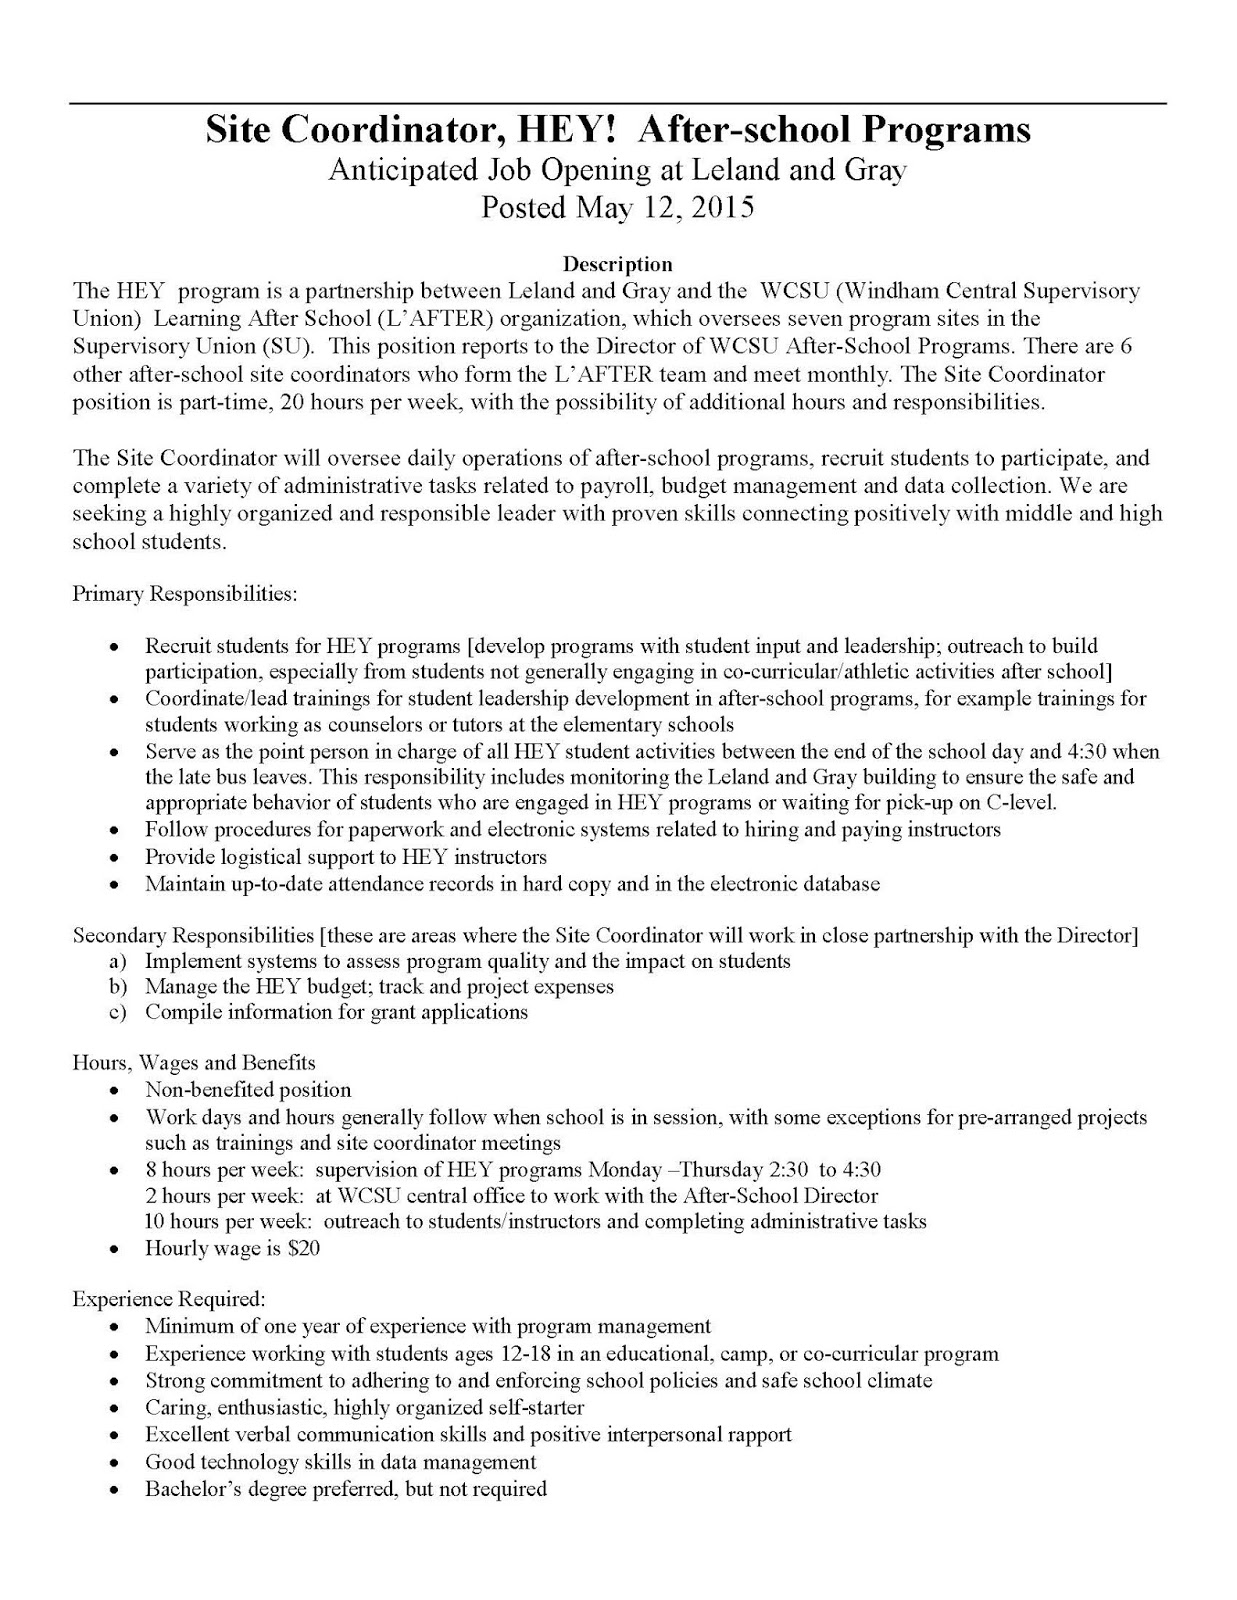 006 Heysitecoord Job Posting May201528129 Page 1 Thesis Generator For Research Remarkable Paper Statement Free Full